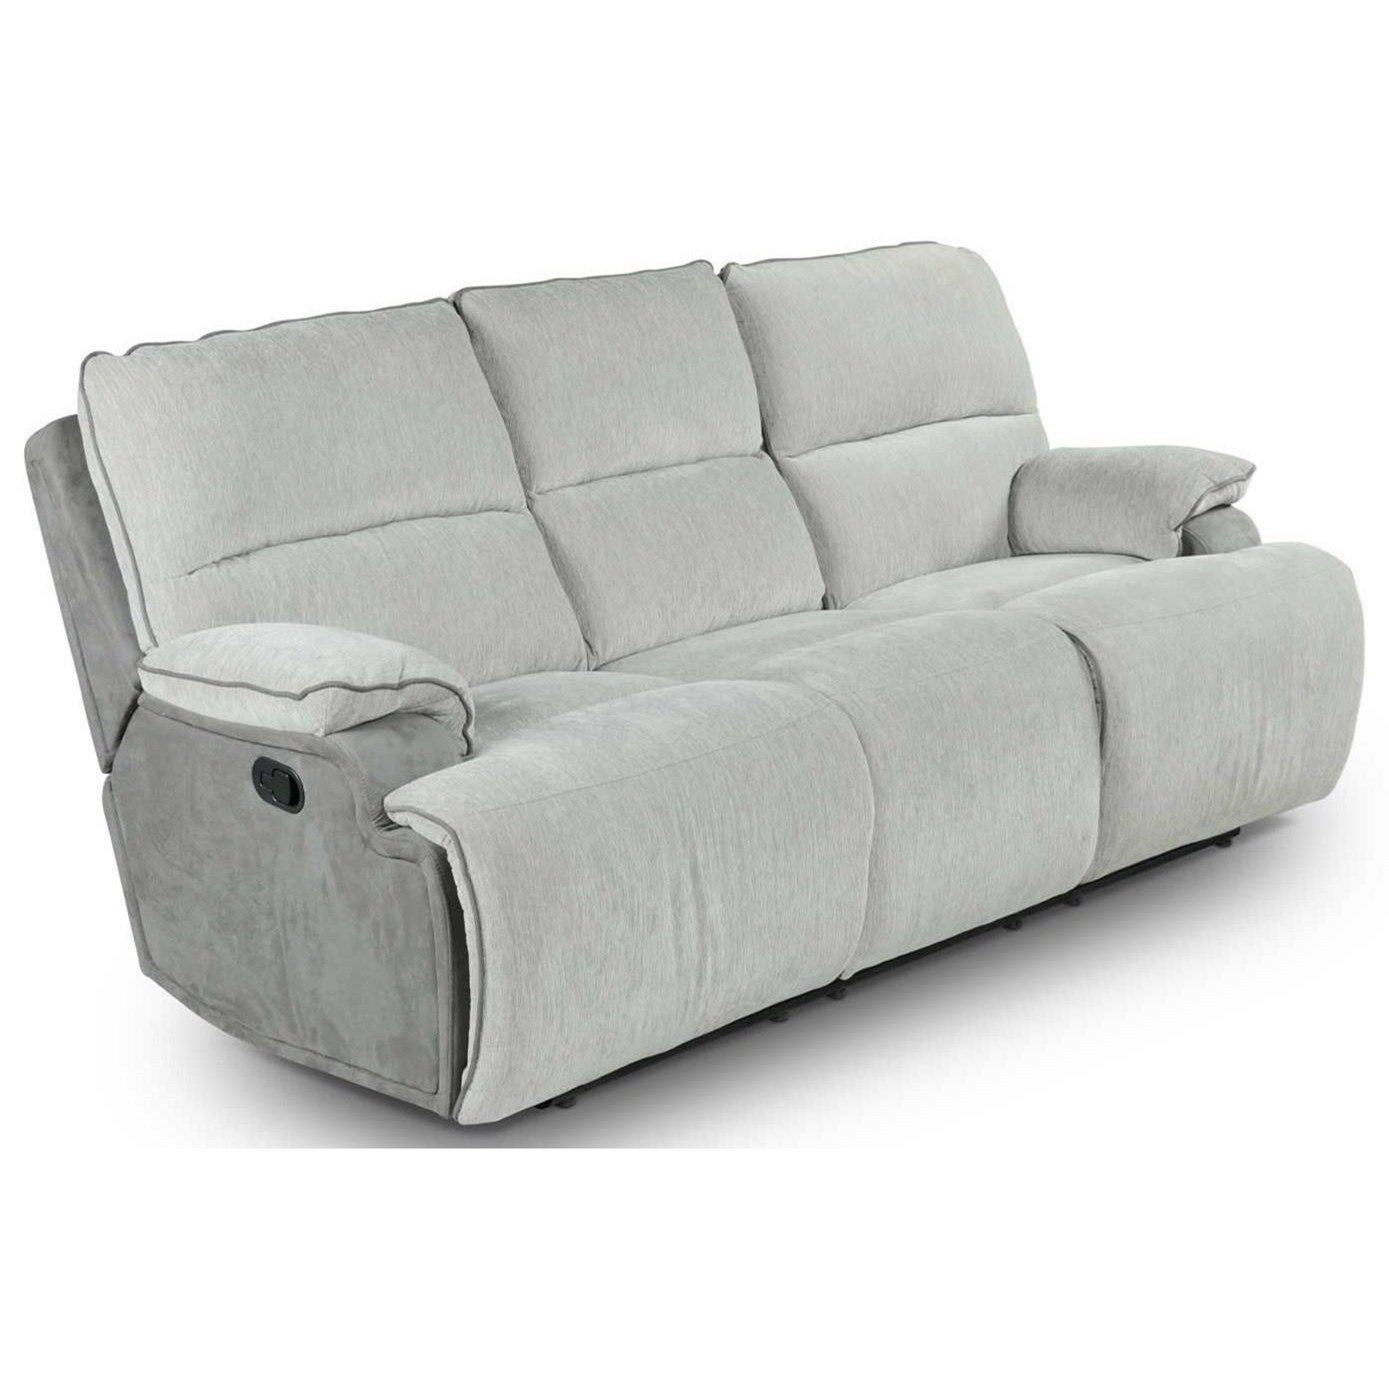 Manual Reclining Sofa